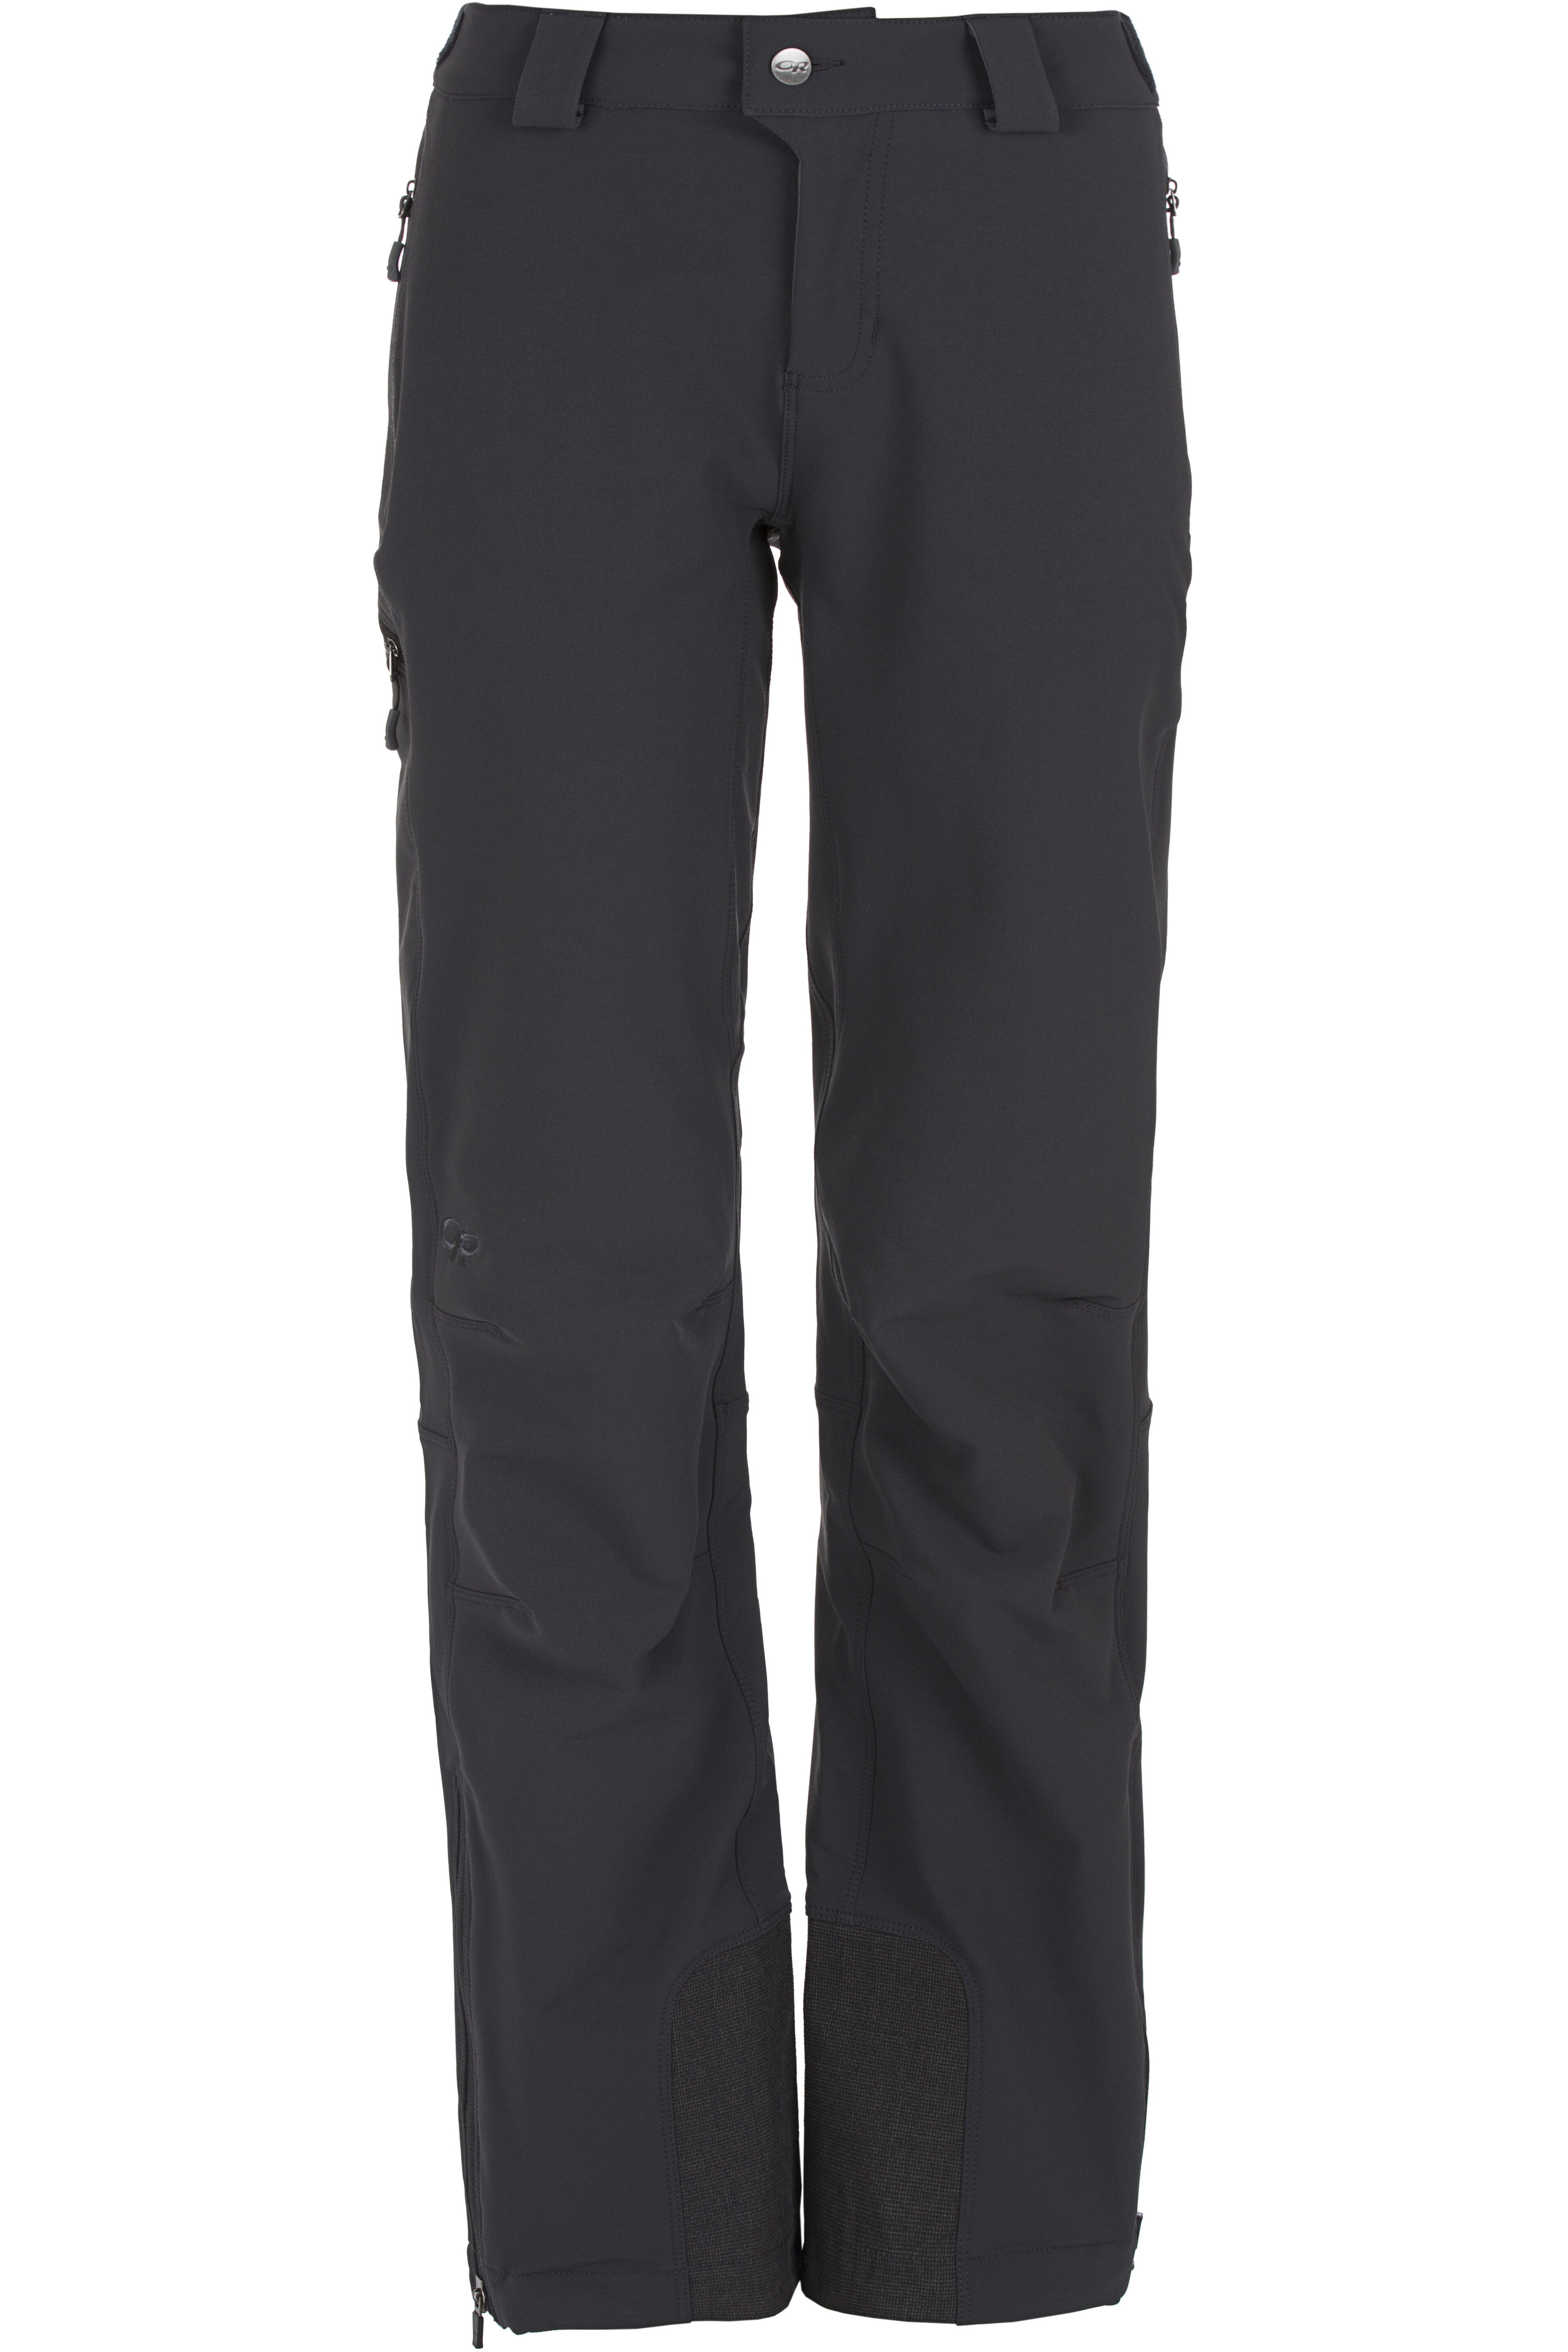 Outdoor Research Cirque Pants Women Black At Addnature Co Uk